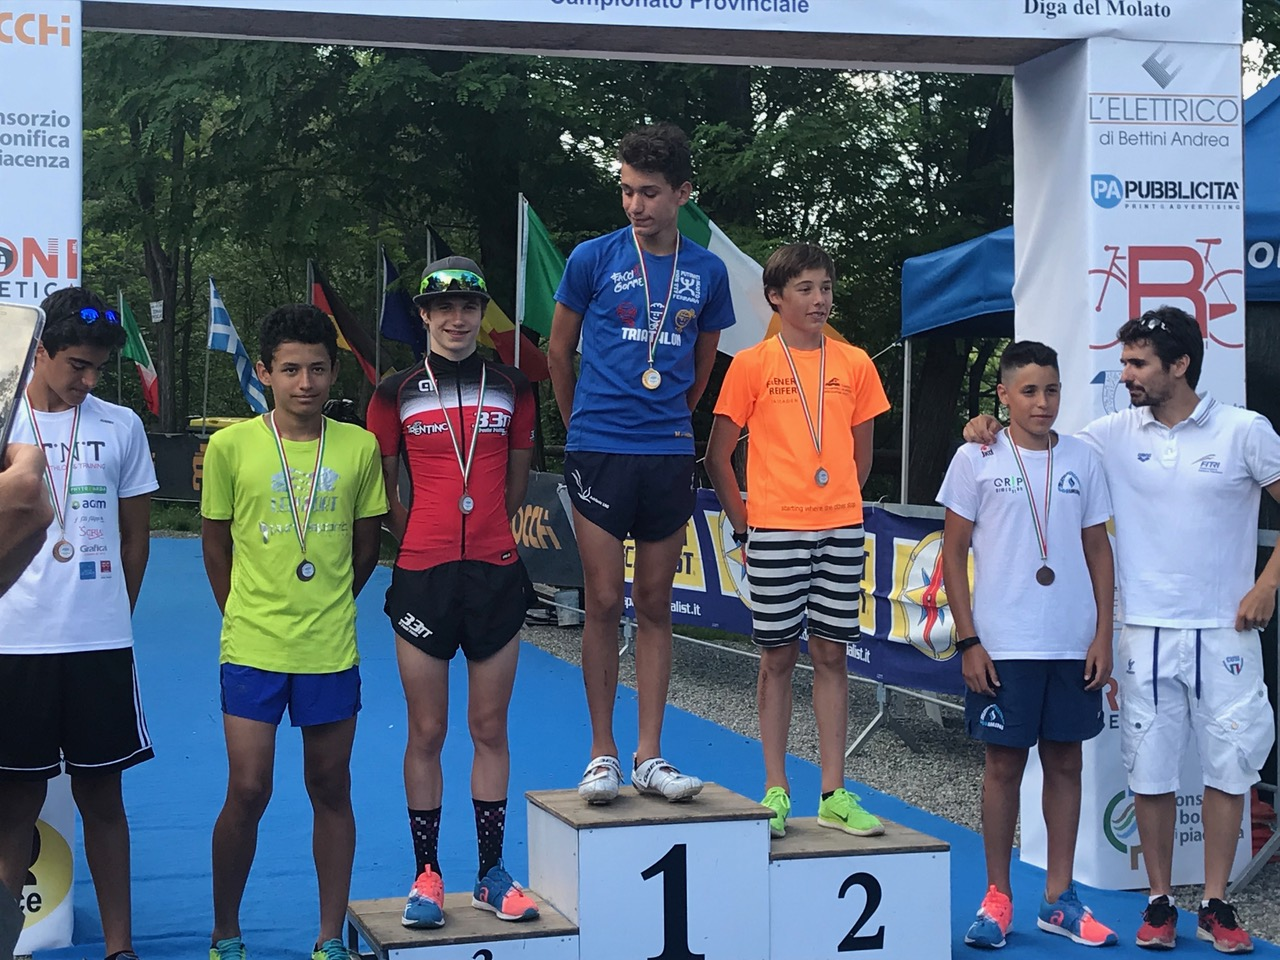 Qualificazioni al campionato italiano categoria Youth 2018